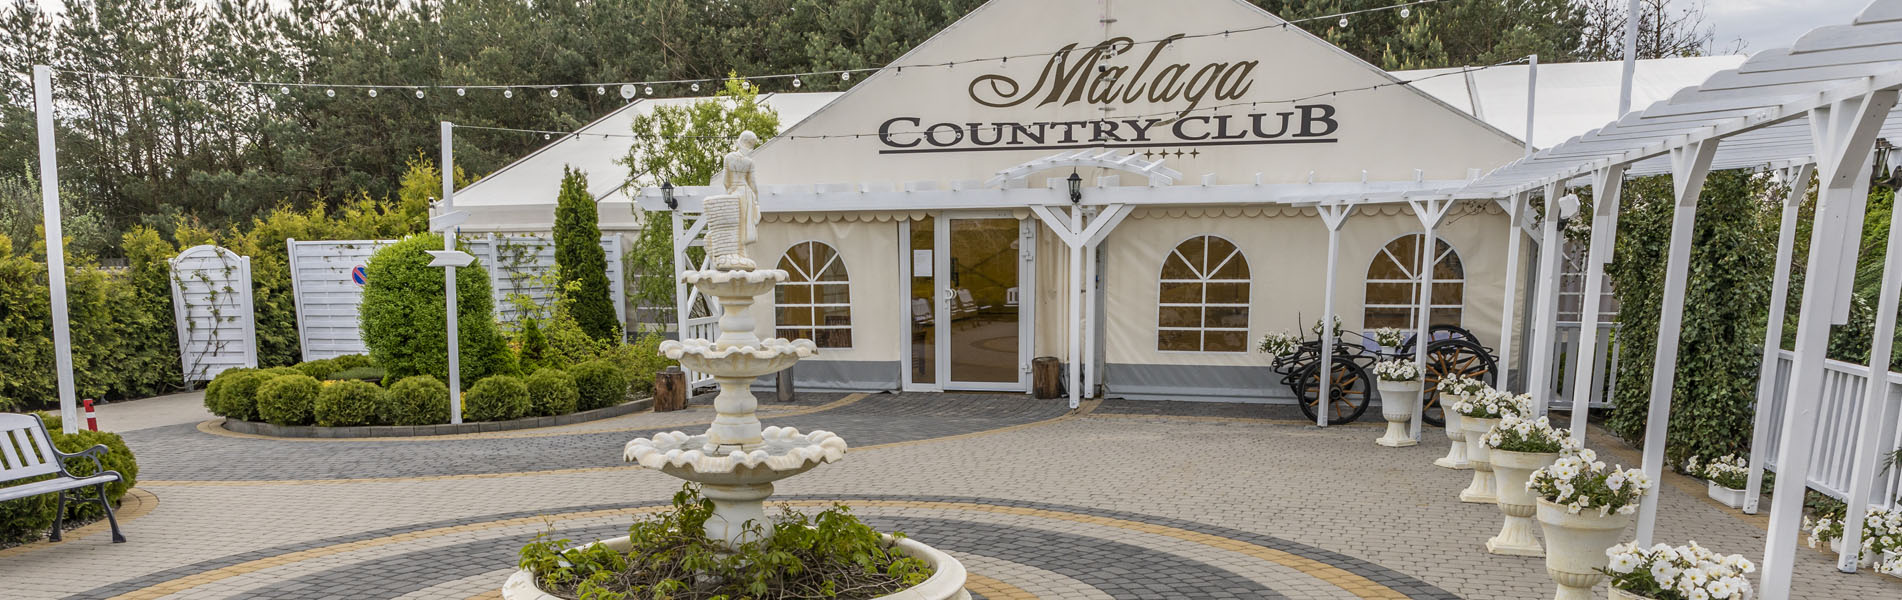 Country Club Malaga